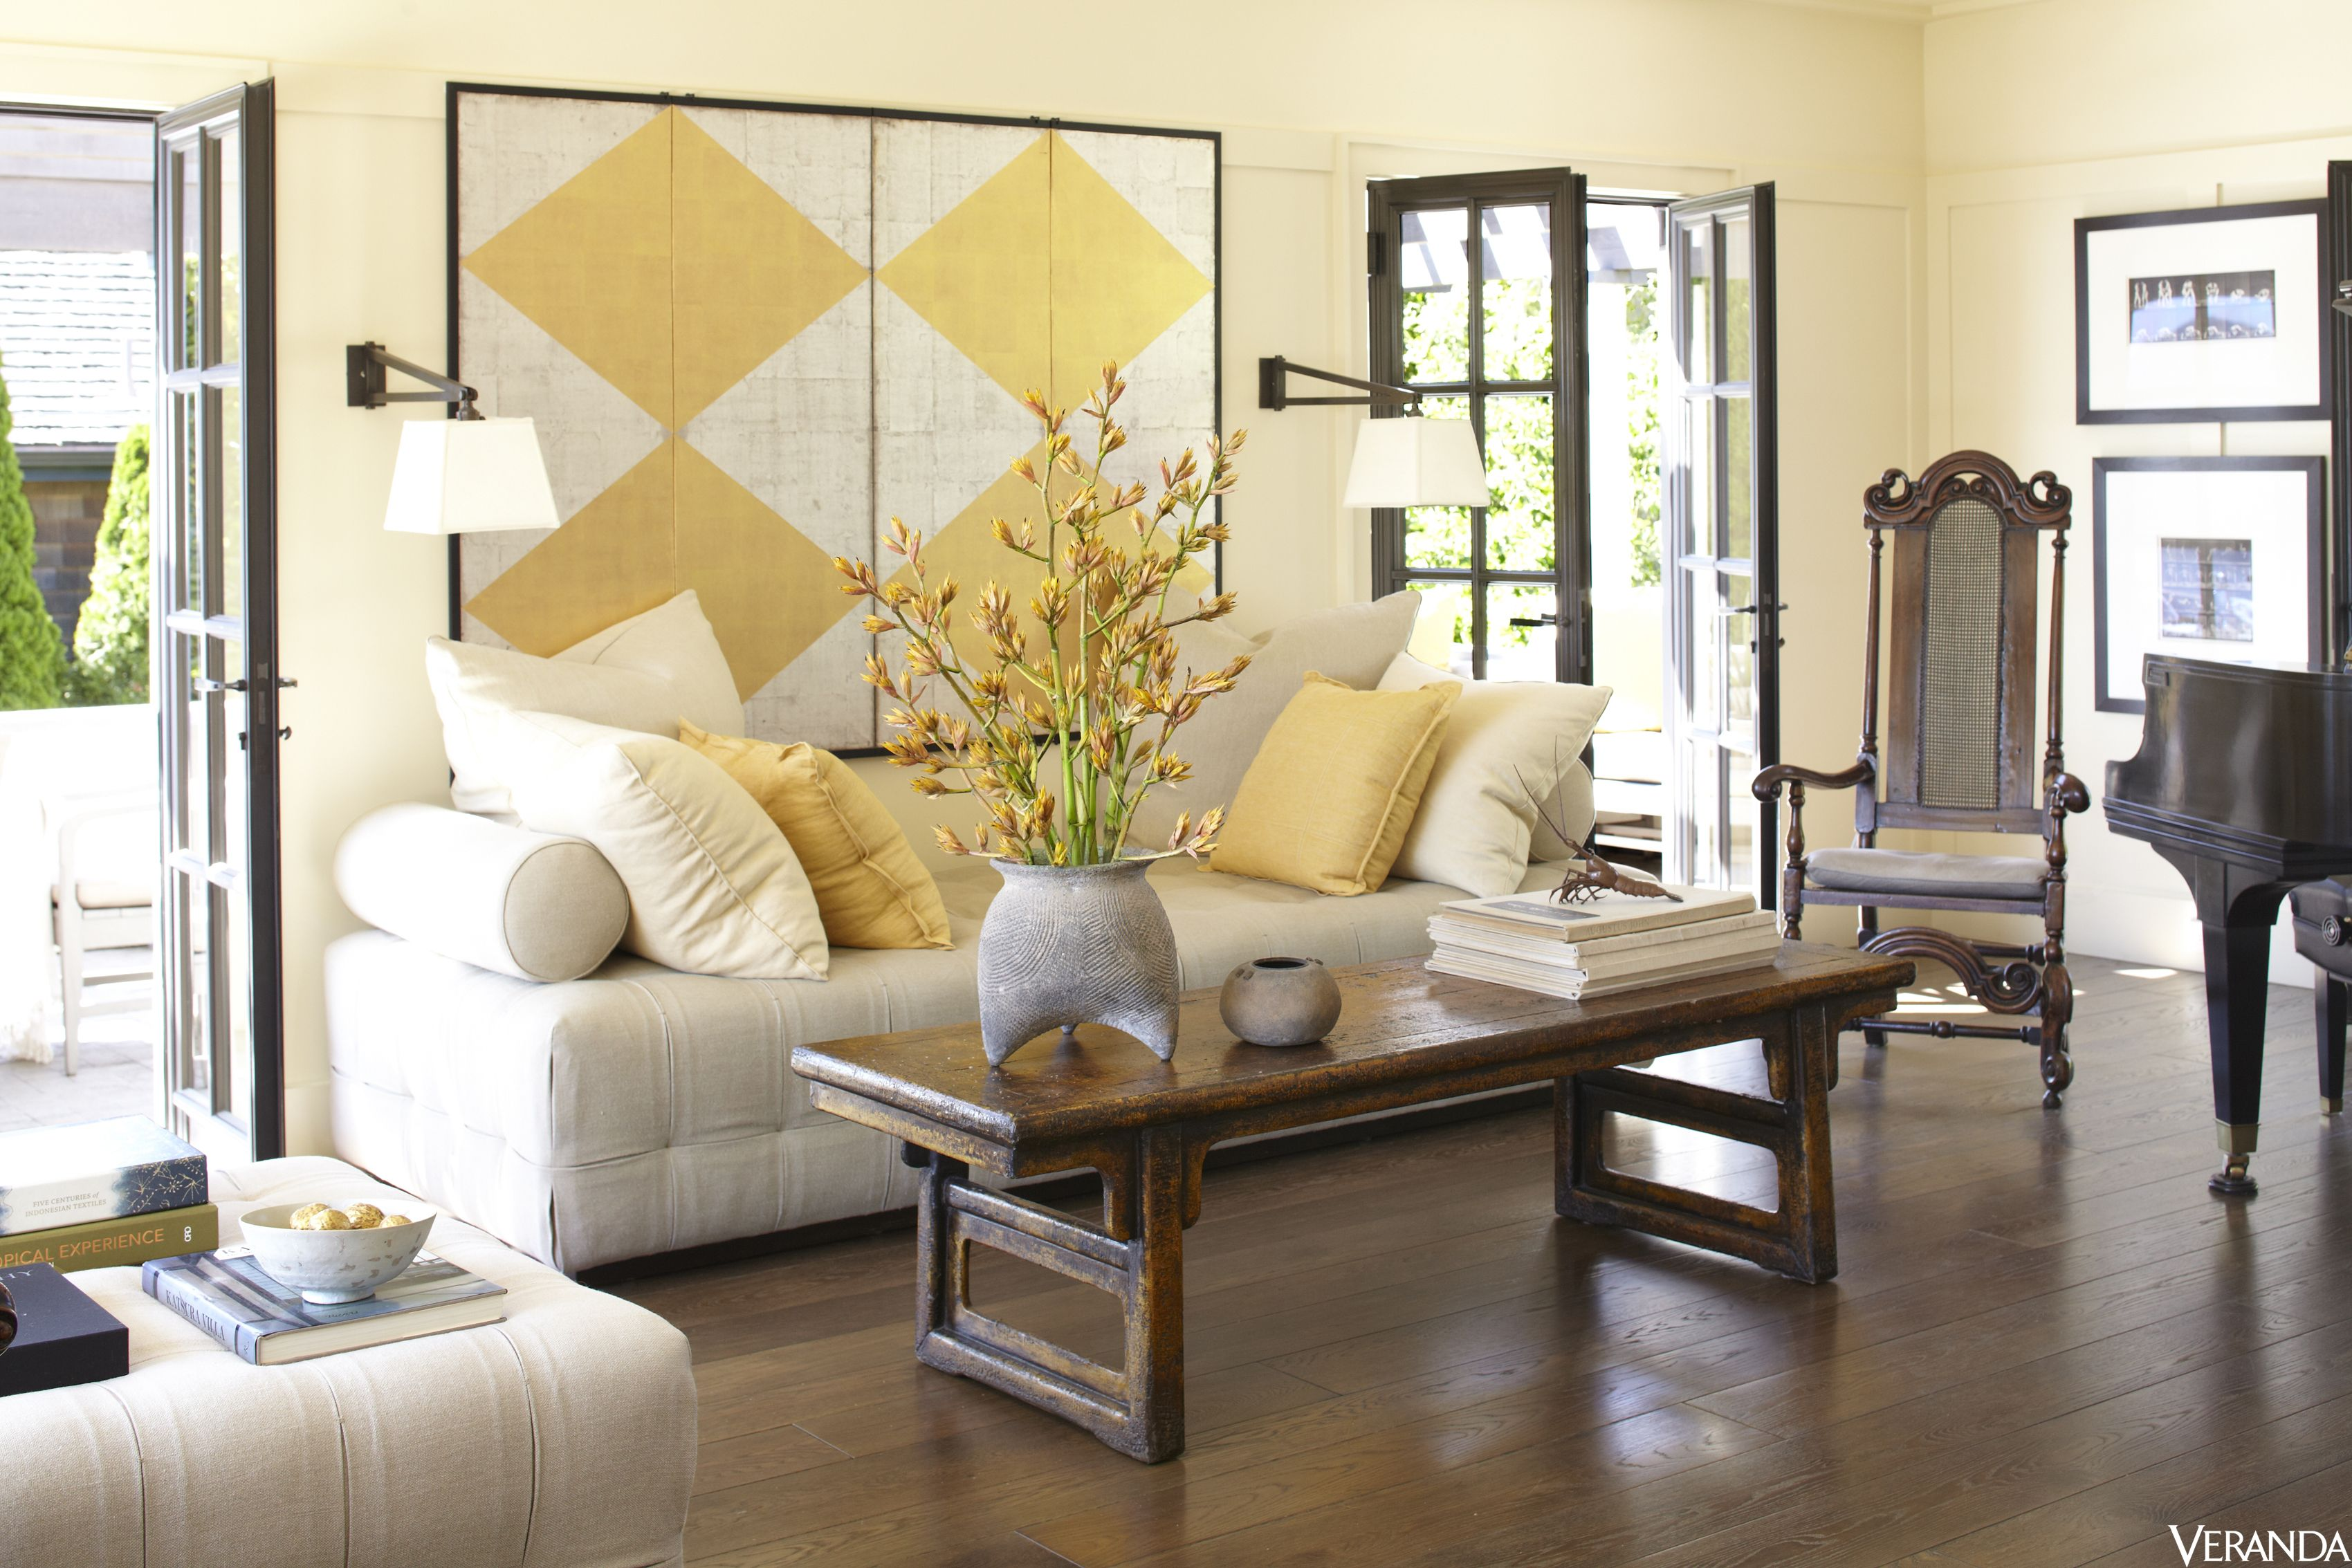 30 Gorgeous Summer House Ideas - Best Ways to Decorate Summer Houses ...